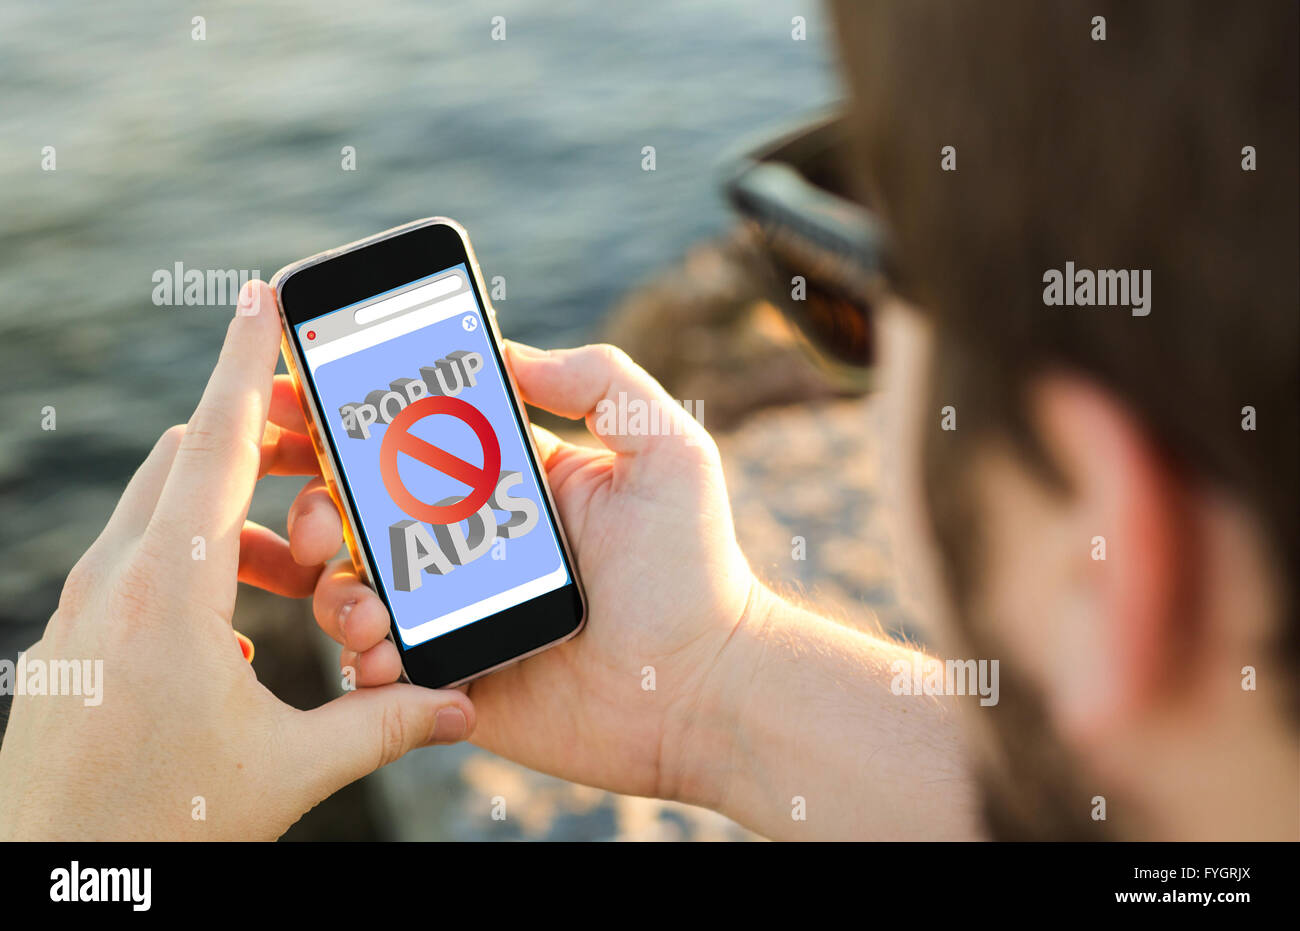 man on the coast using his smartphone with ads blocker. All screen graphics are made up. - Stock Image